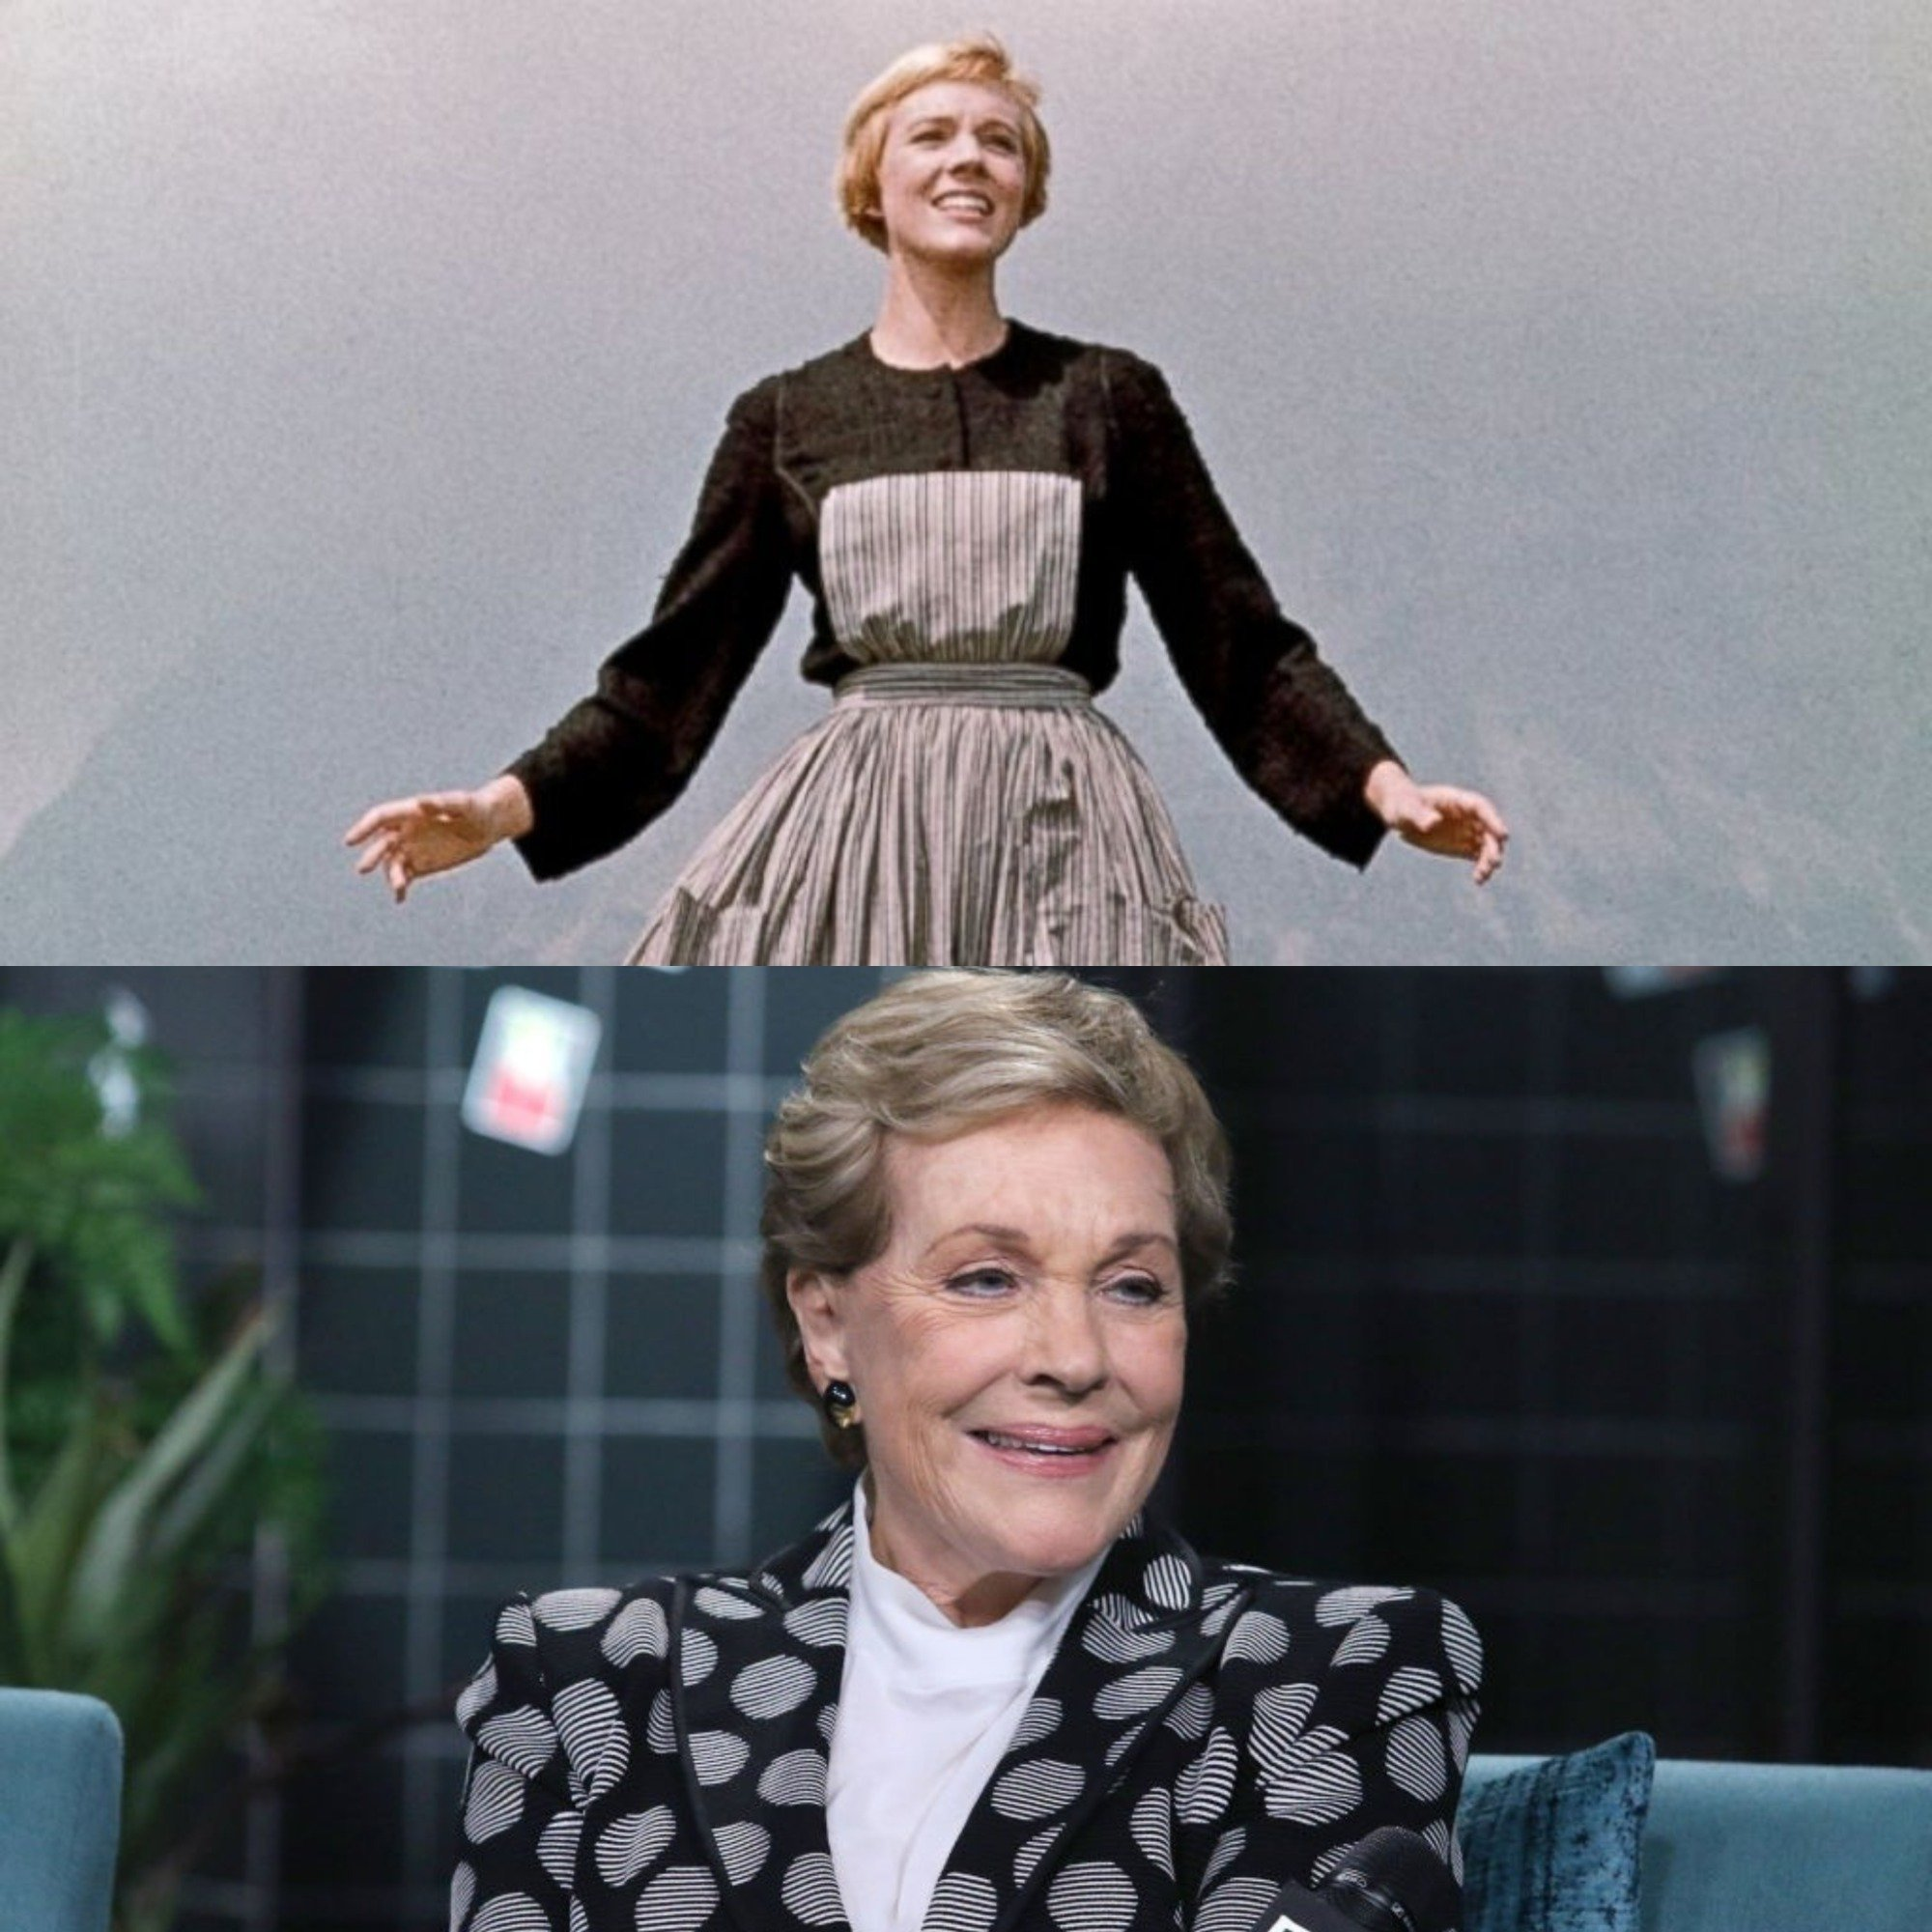 Image credits: 20th Century Studios/The Sound of Music - Getty Images/Jim Spellman